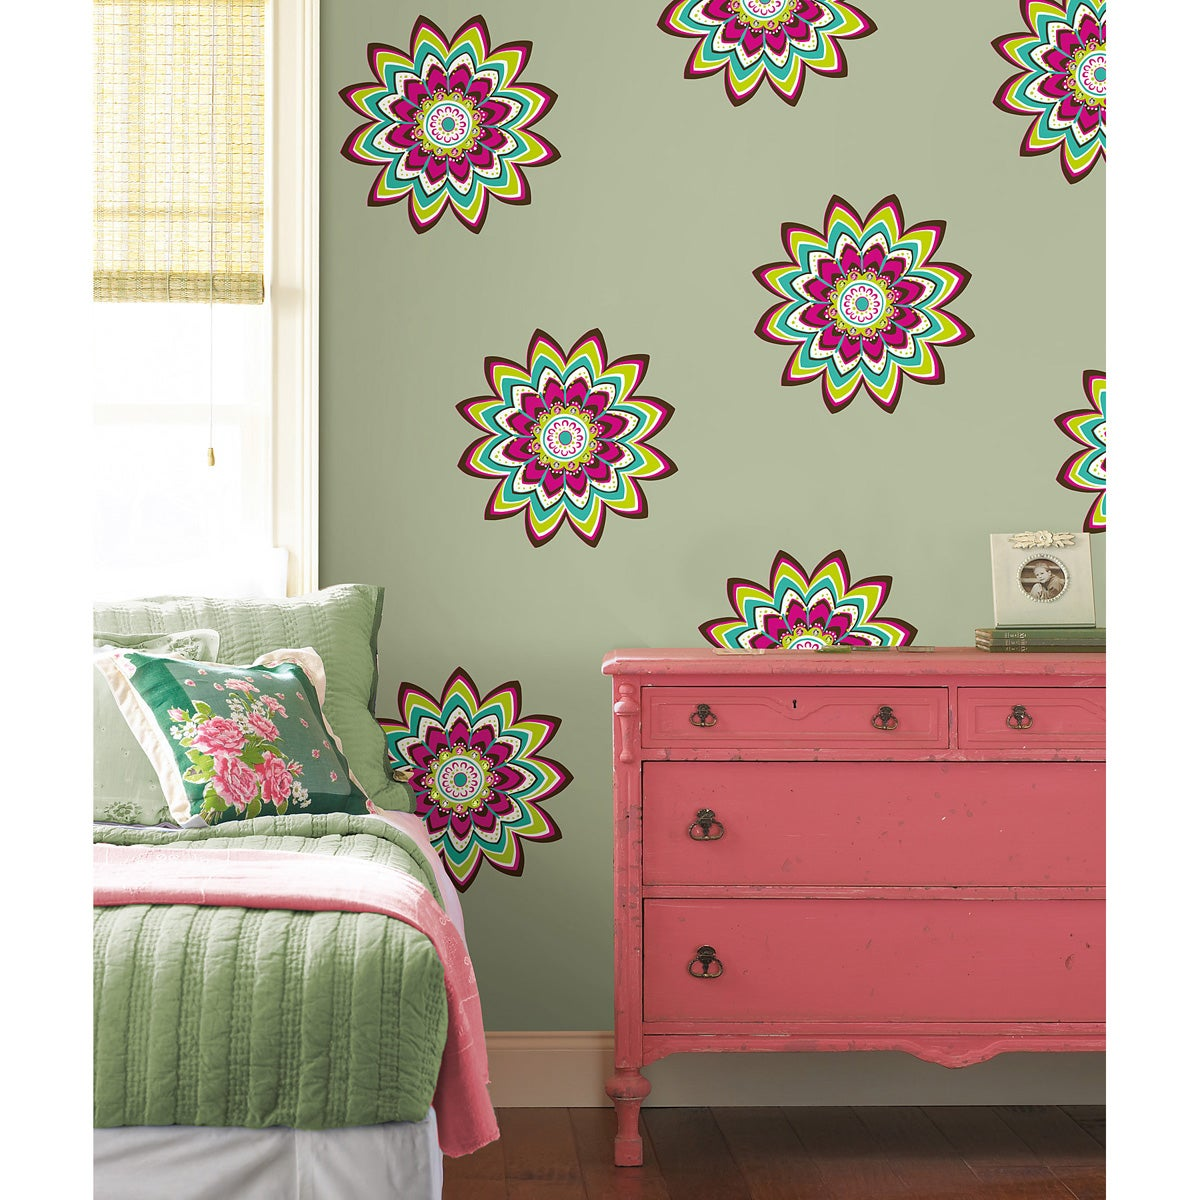 Dandelion Wall Art Stickers Shop Wall Pops Zsa Zsa Dots Wall Decals Free Shipping